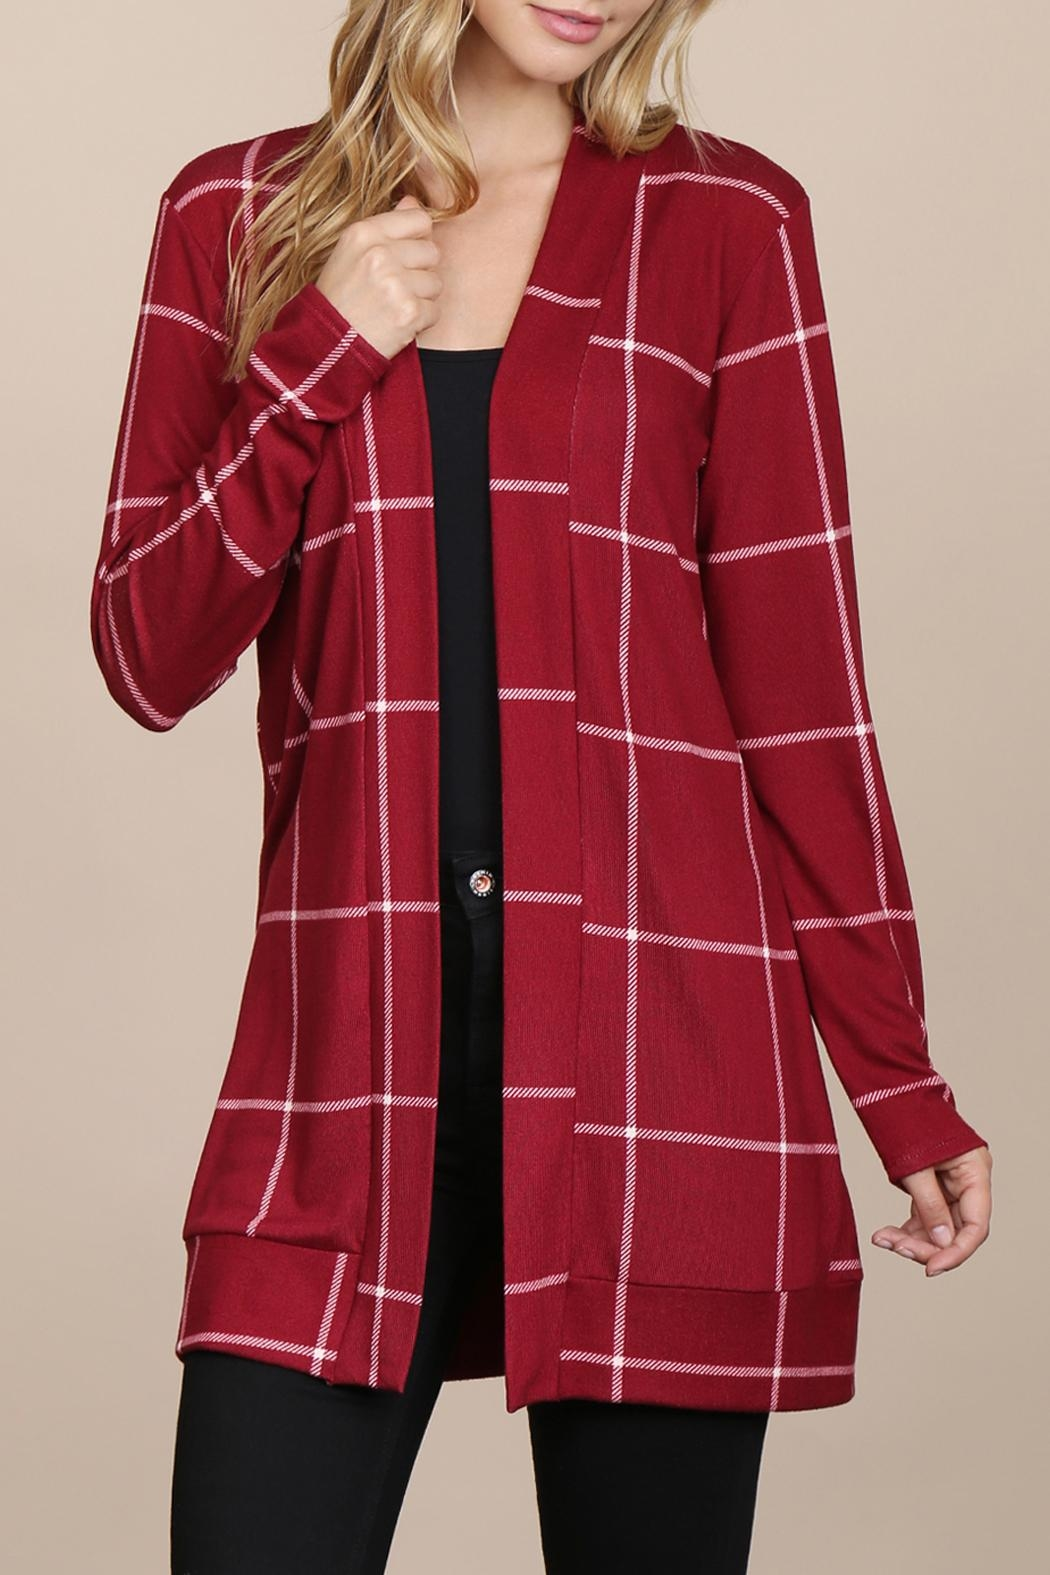 Riah Fashion Long-Sleeved-Open-Front Plaid Cardigan - Front Cropped Image